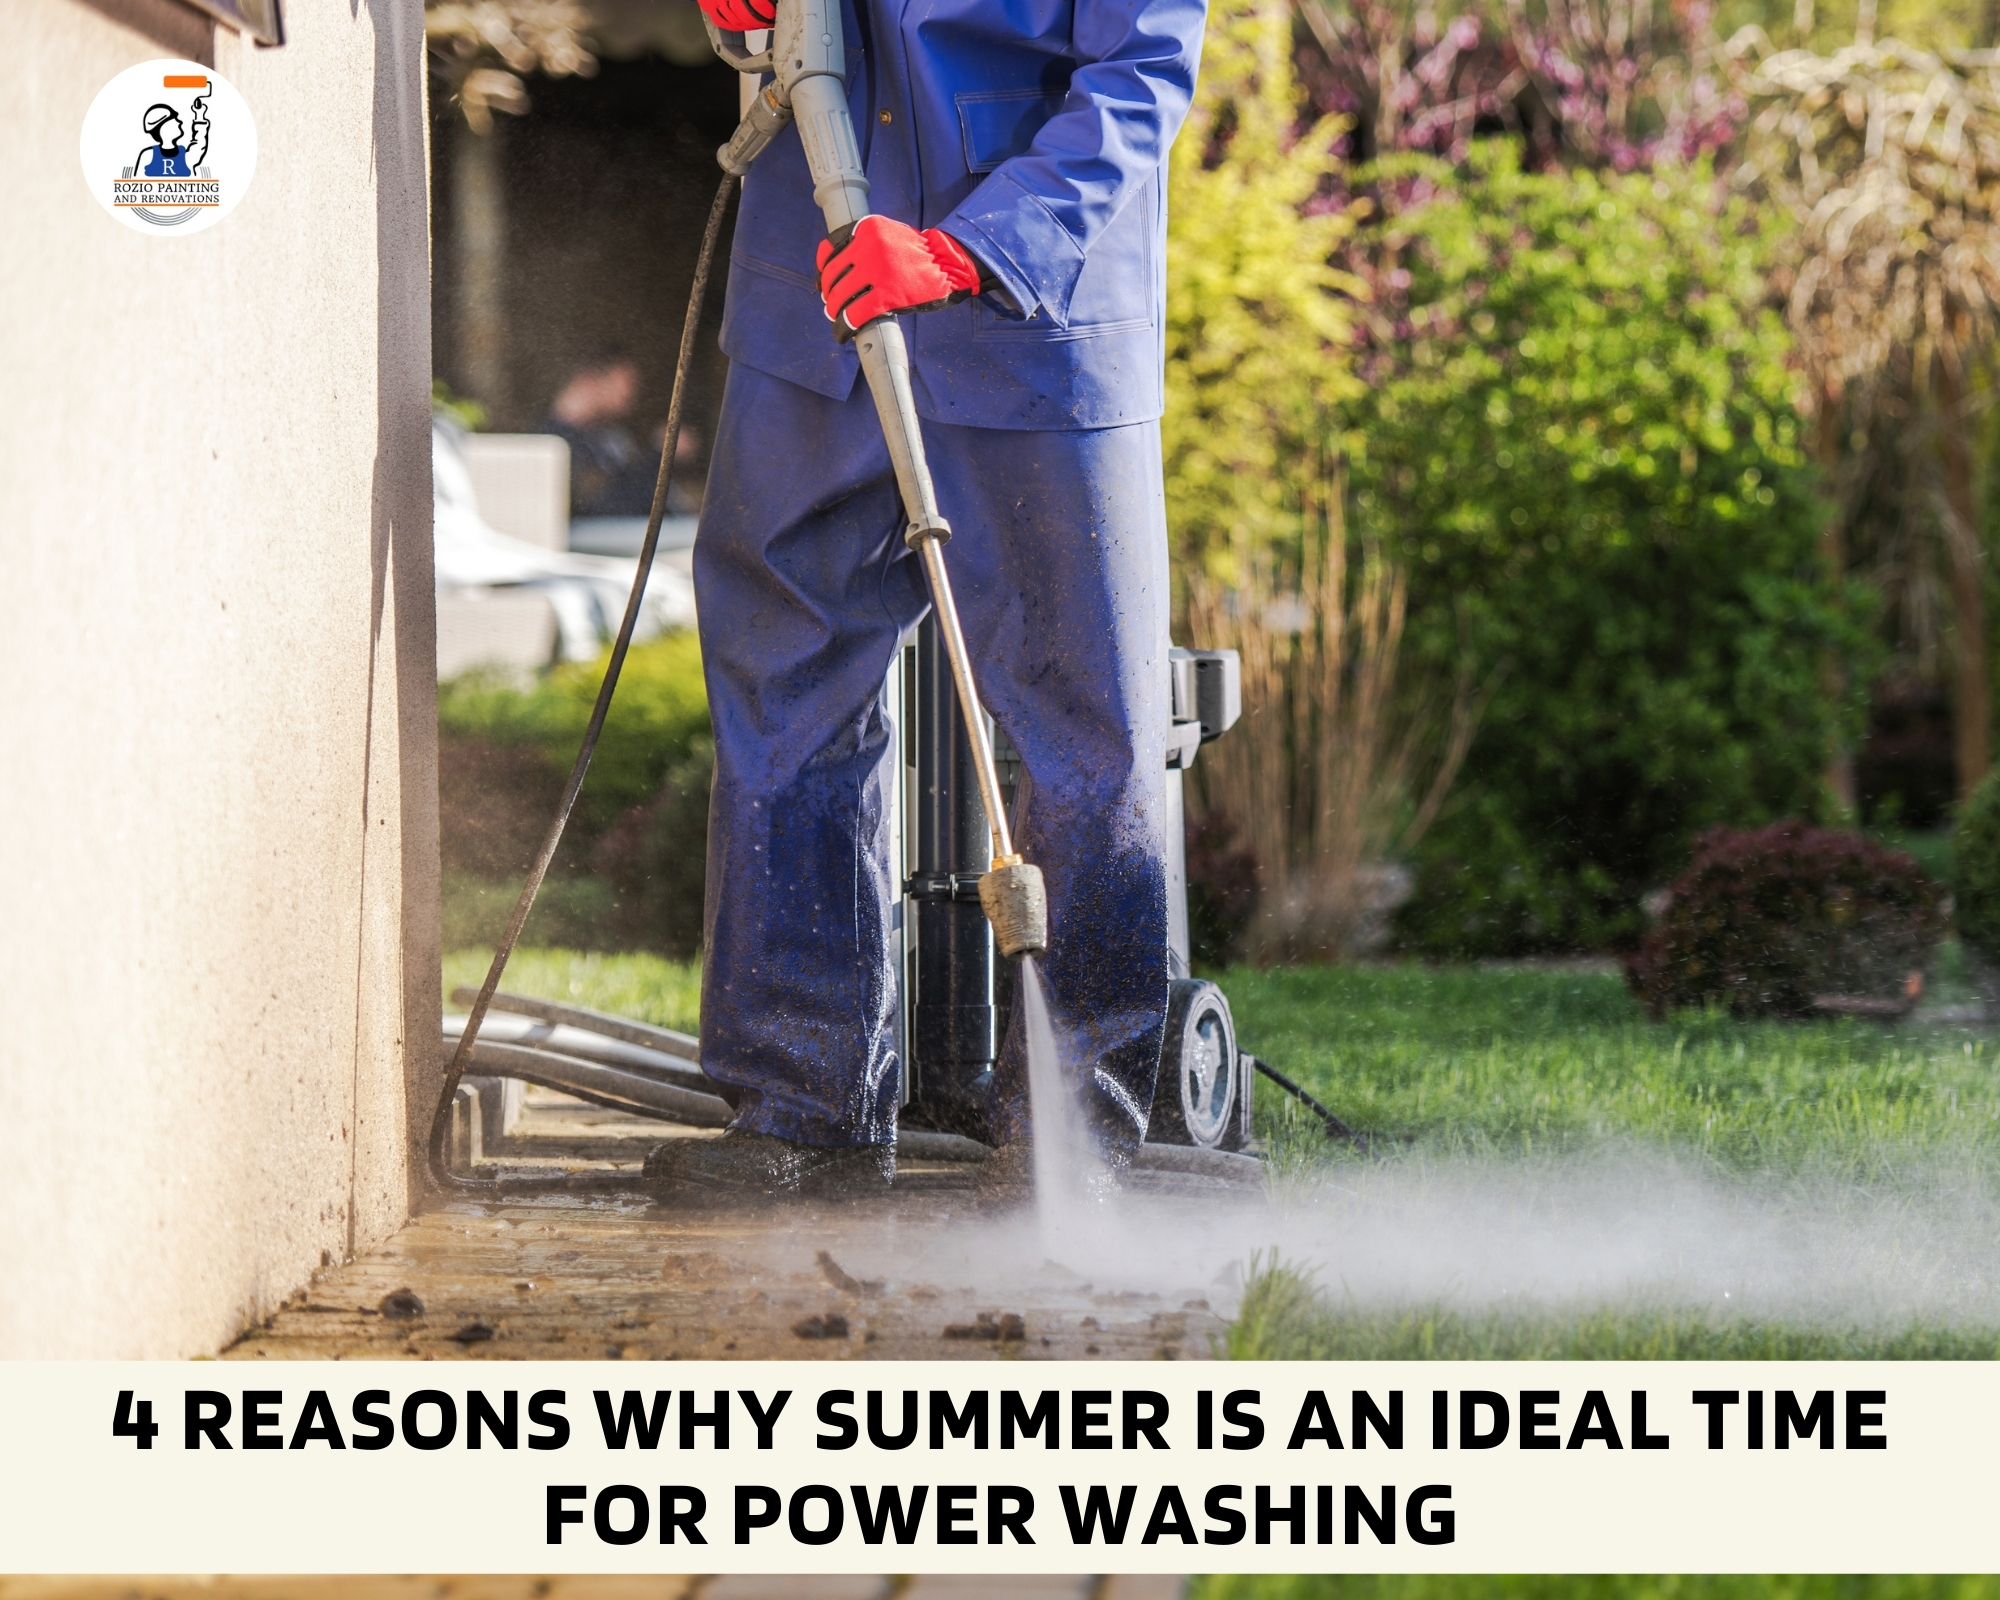 4 Reasons Why Summer Is an Ideal Time For Power Washing